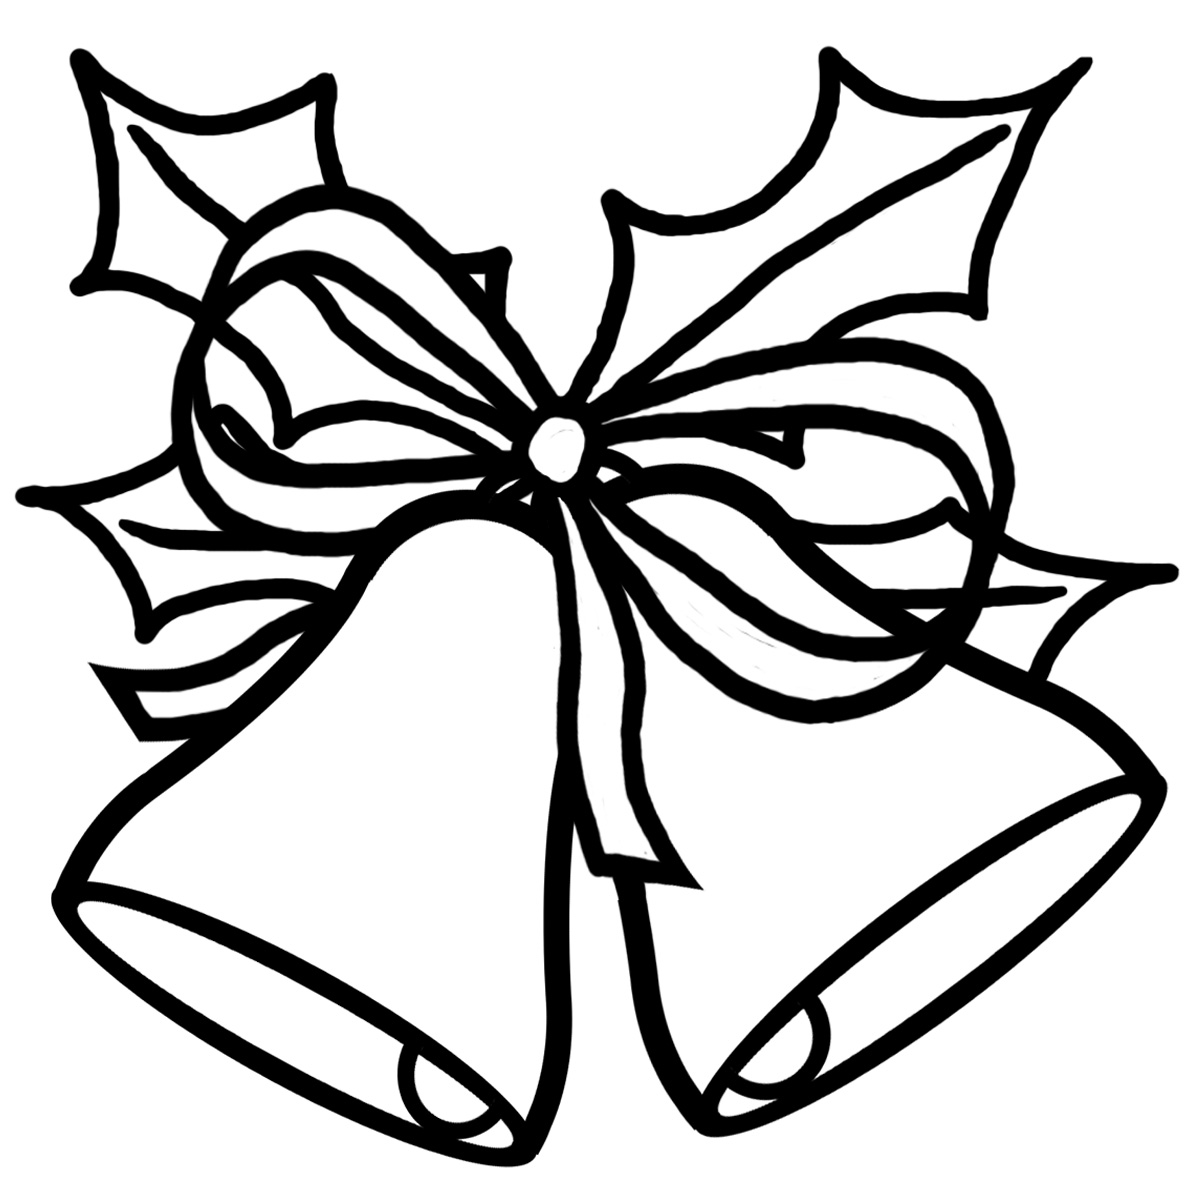 Christmas tree clip art black and whiteblack and white christmas clip